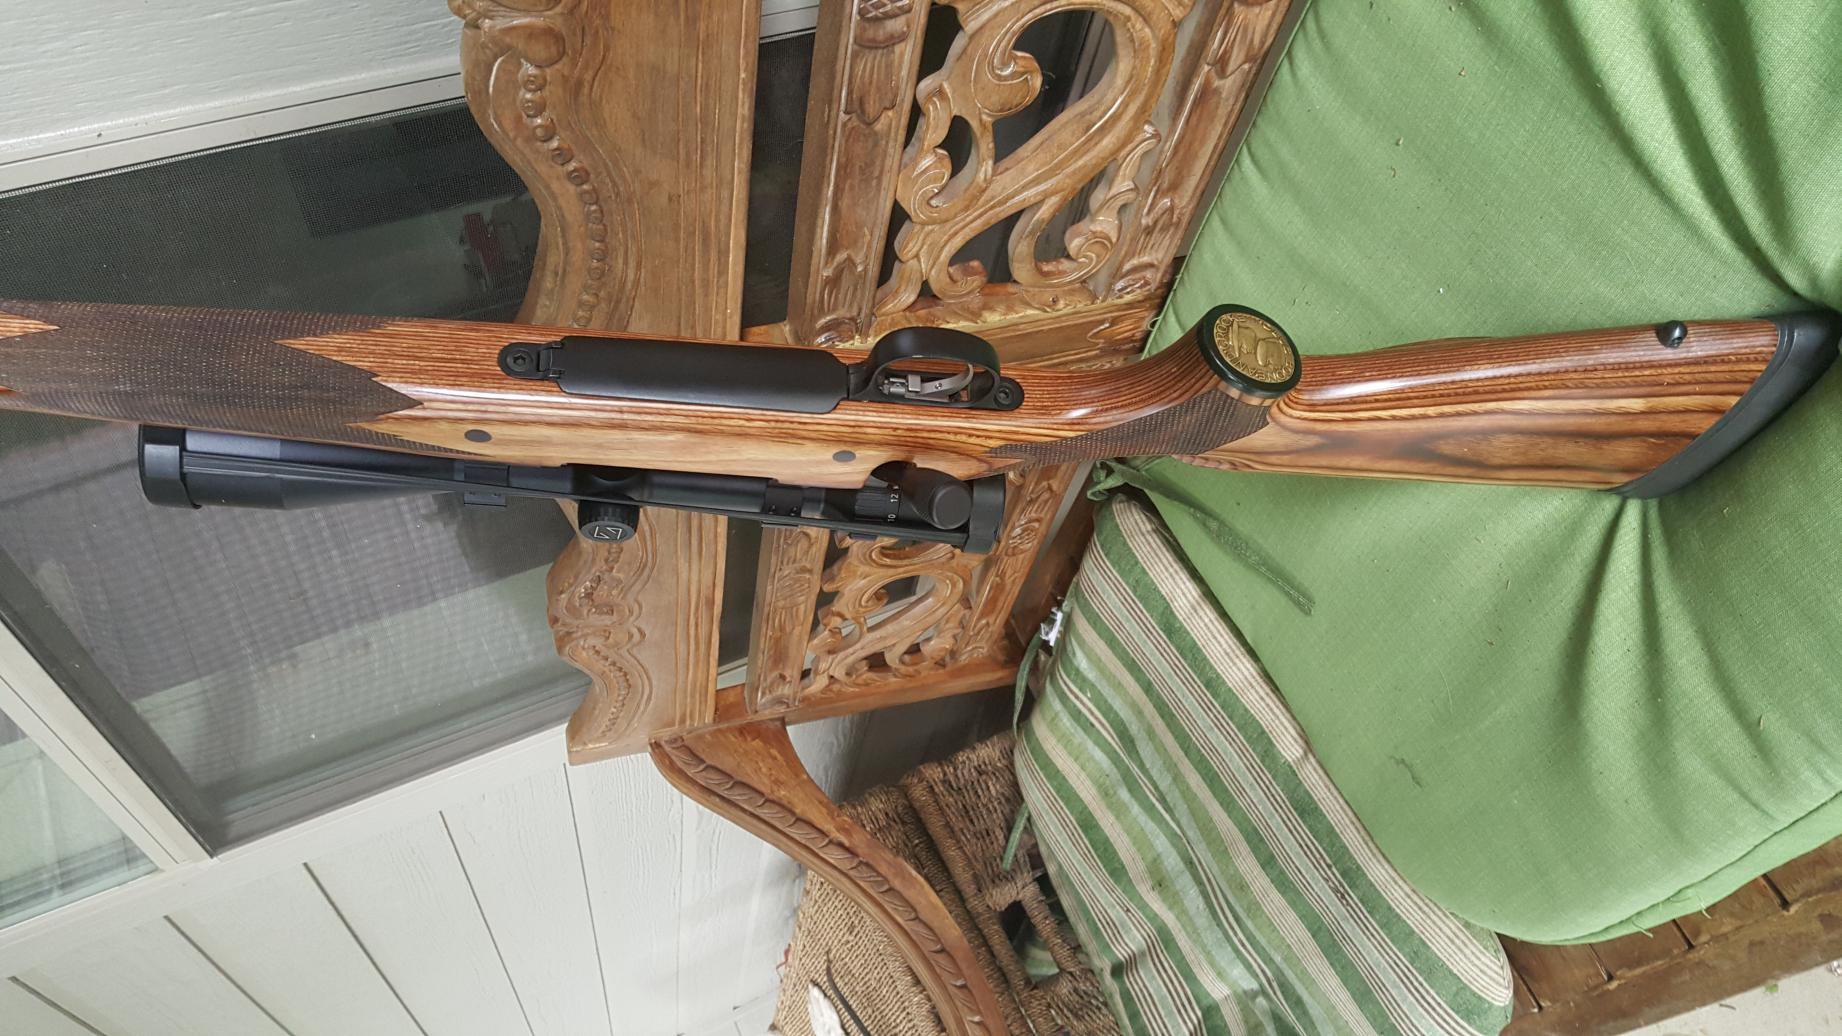 I want an Ackley Improved Rifle??? - Page 4 - Shooters Forum